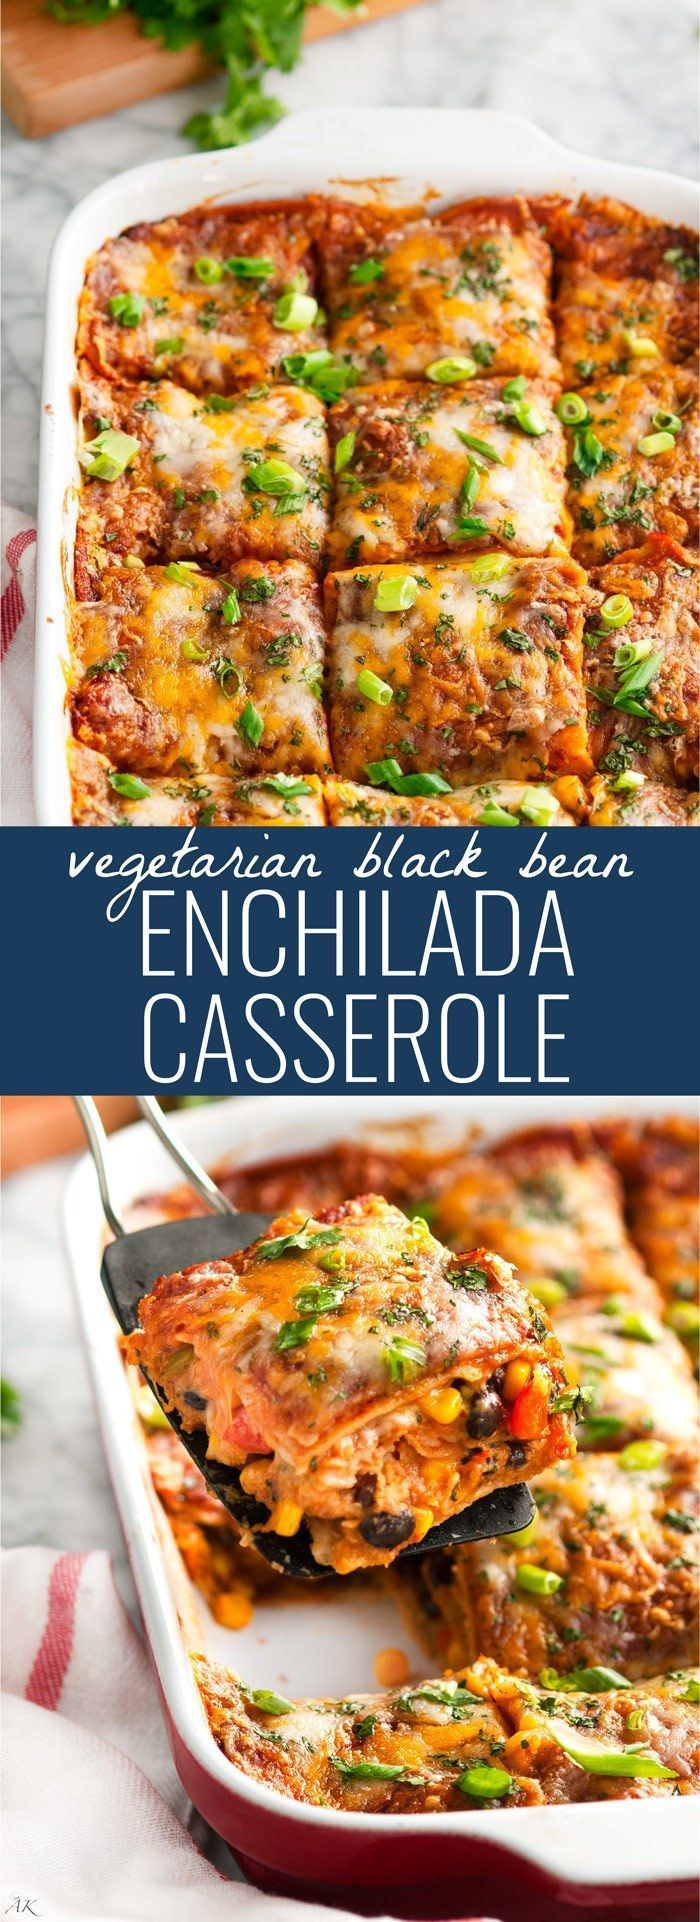 Best 25 vegetarian enchiladas ideas on pinterest vegetarian vegetarian black bean enchilada casserole forumfinder Gallery